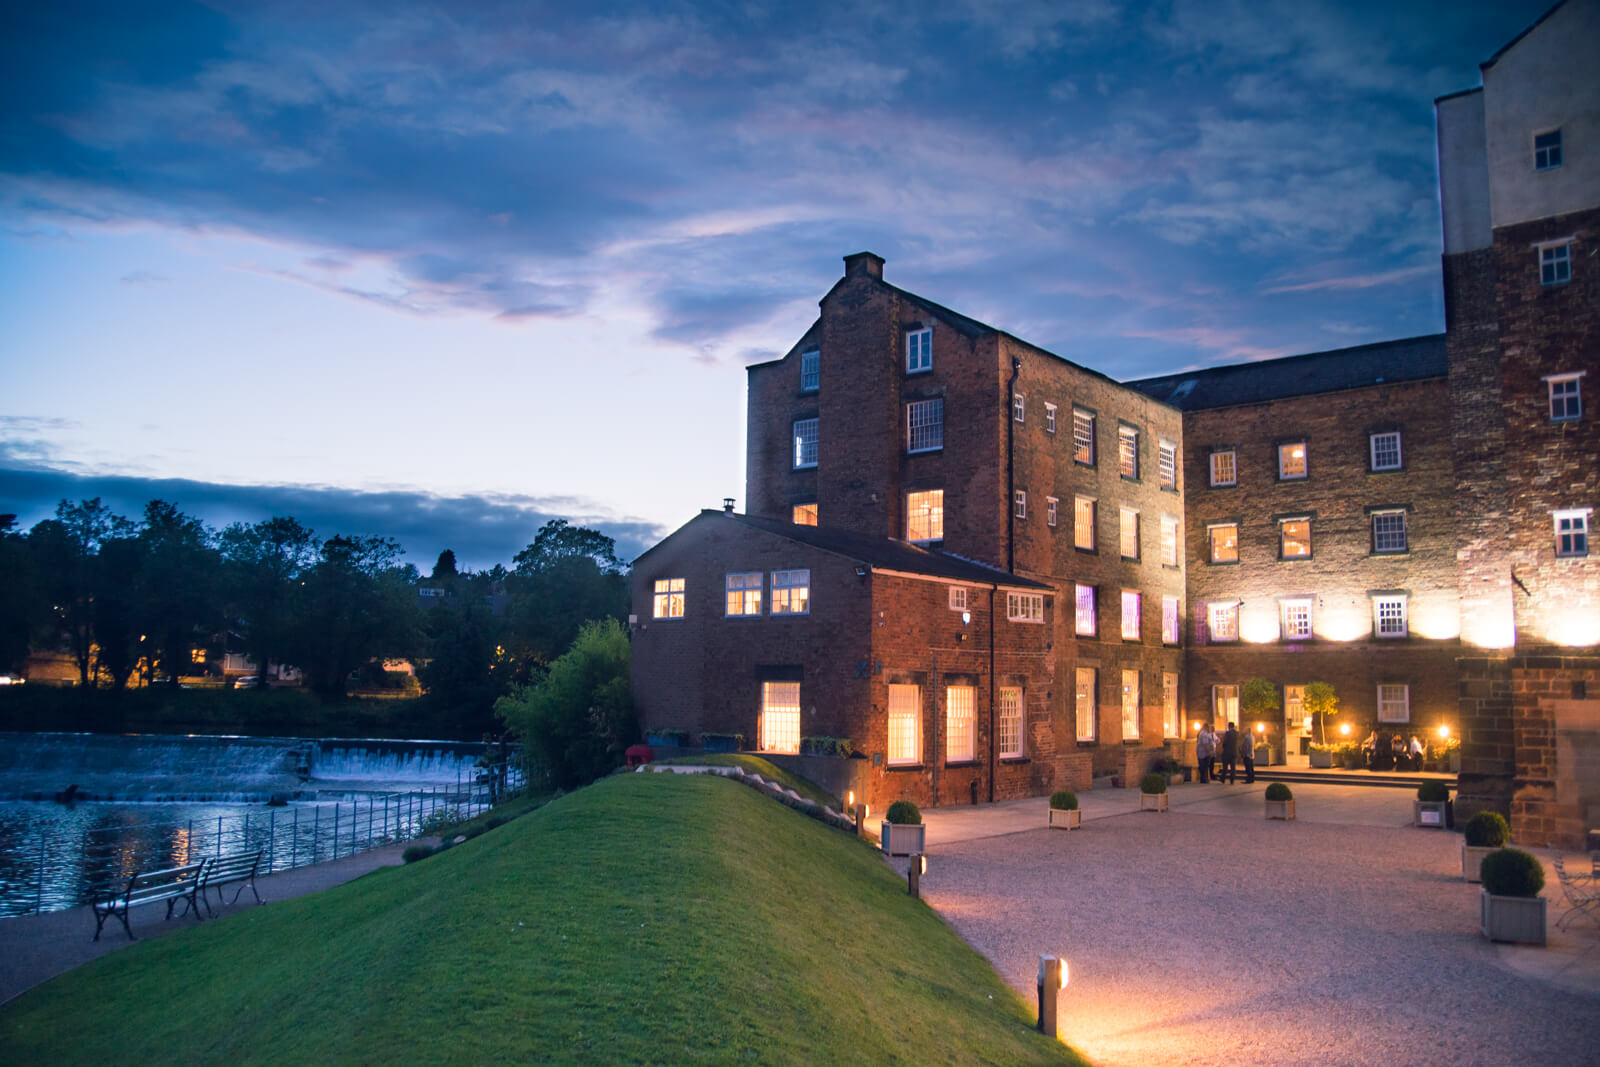 The West Mill Wedding Venue lit up at night by the derwent river